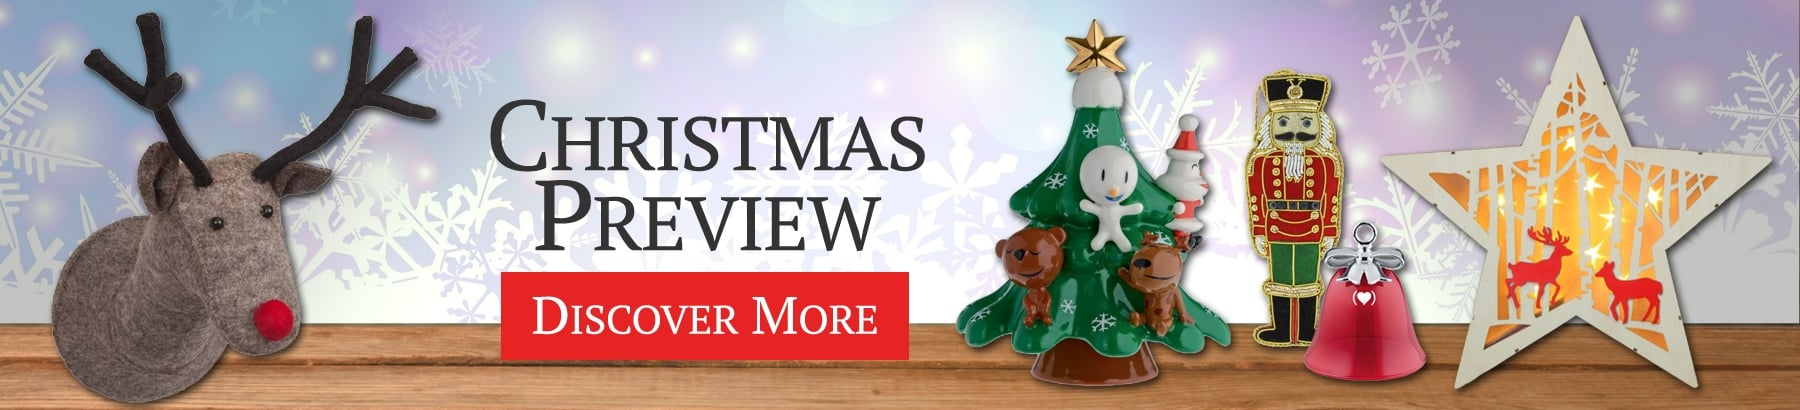 Christmas Preview